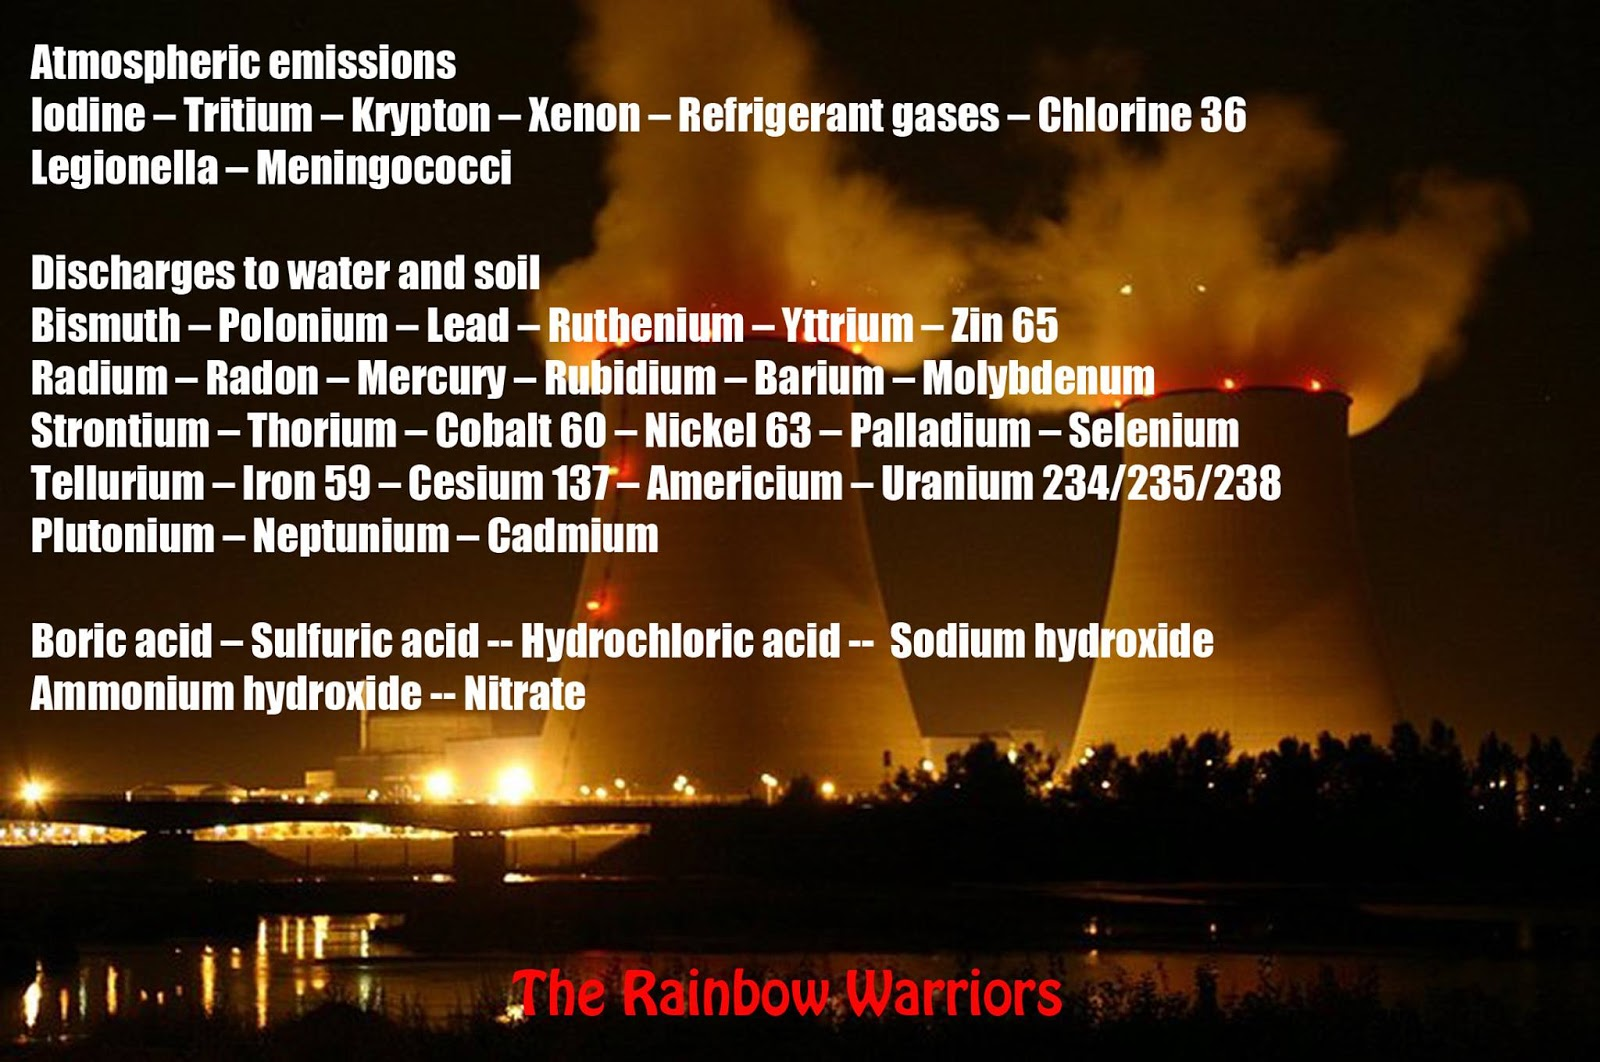 Radioactive krypton 85 gas released by all nuclear power stations there is also the risk of radiochemical actions and effects caused by krypton 85 containing plumes in other air borne pollutants like the latters biocorpaavc